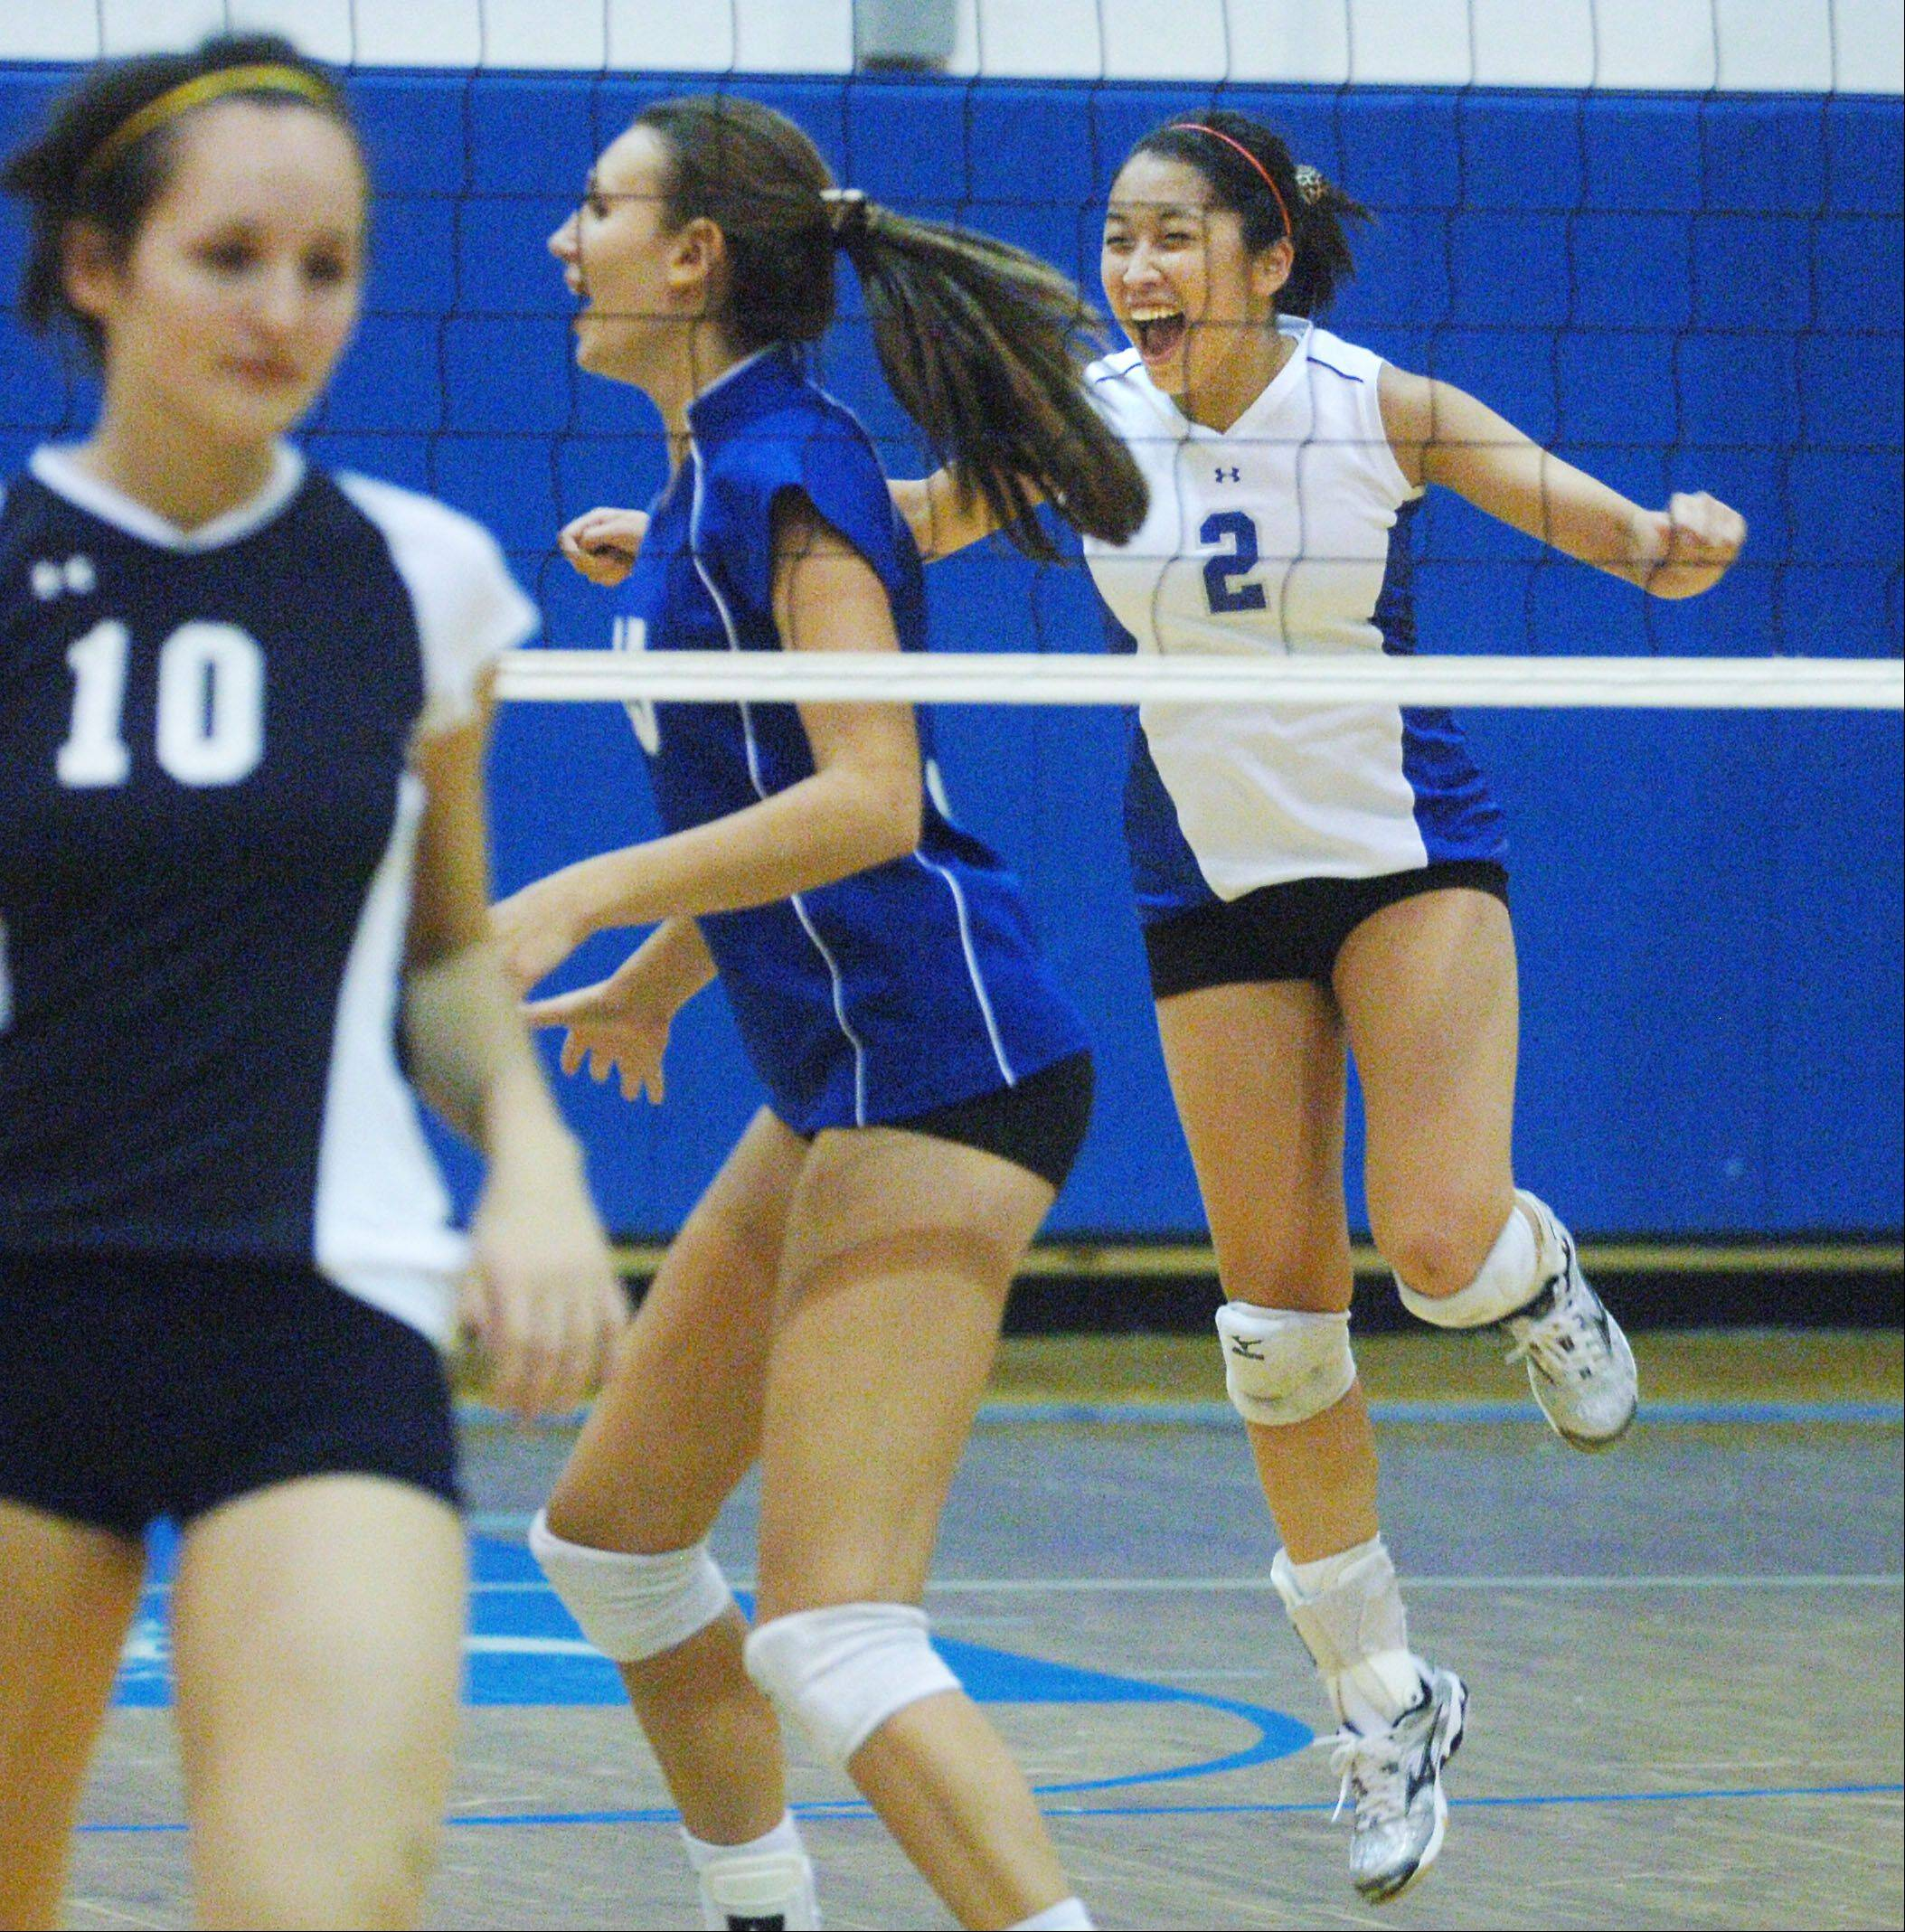 Amy Choi (2), here celebrating a point during her high school days, is a standout libero at Lewis University.